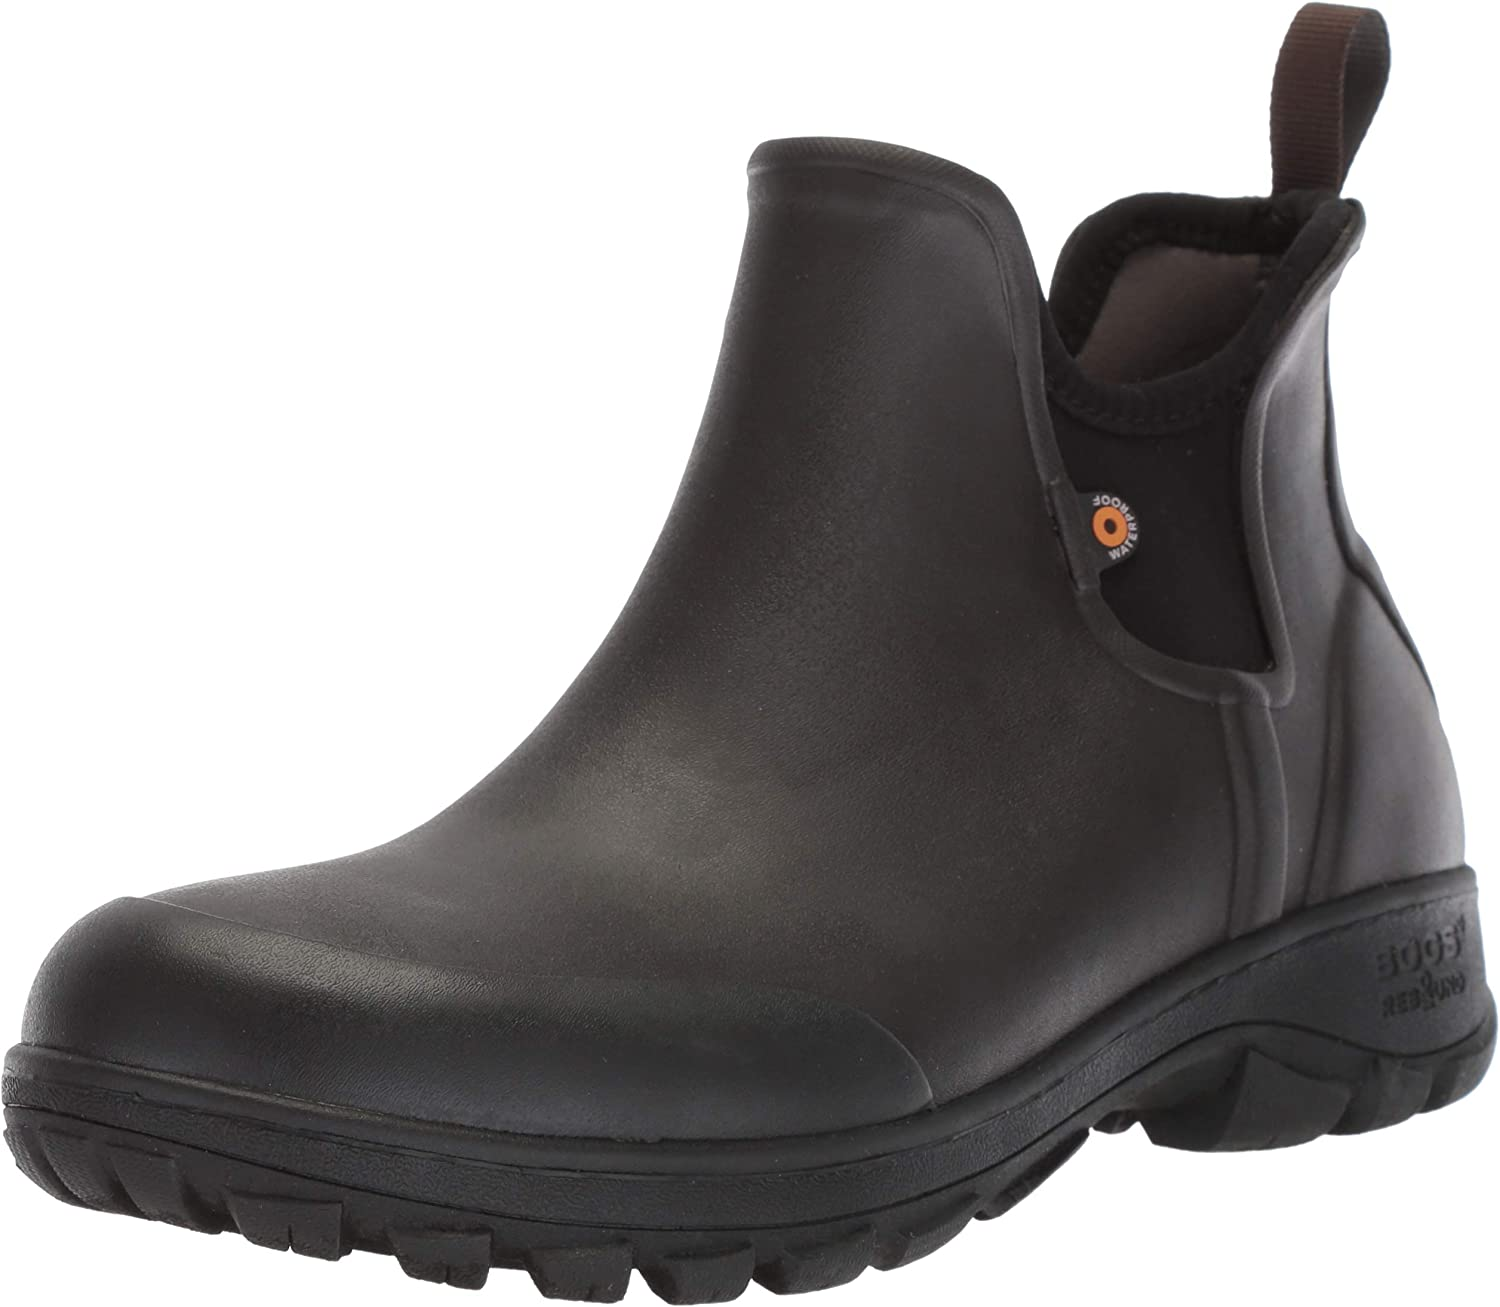 Top 8 Bogs Men's Range Tall Boot